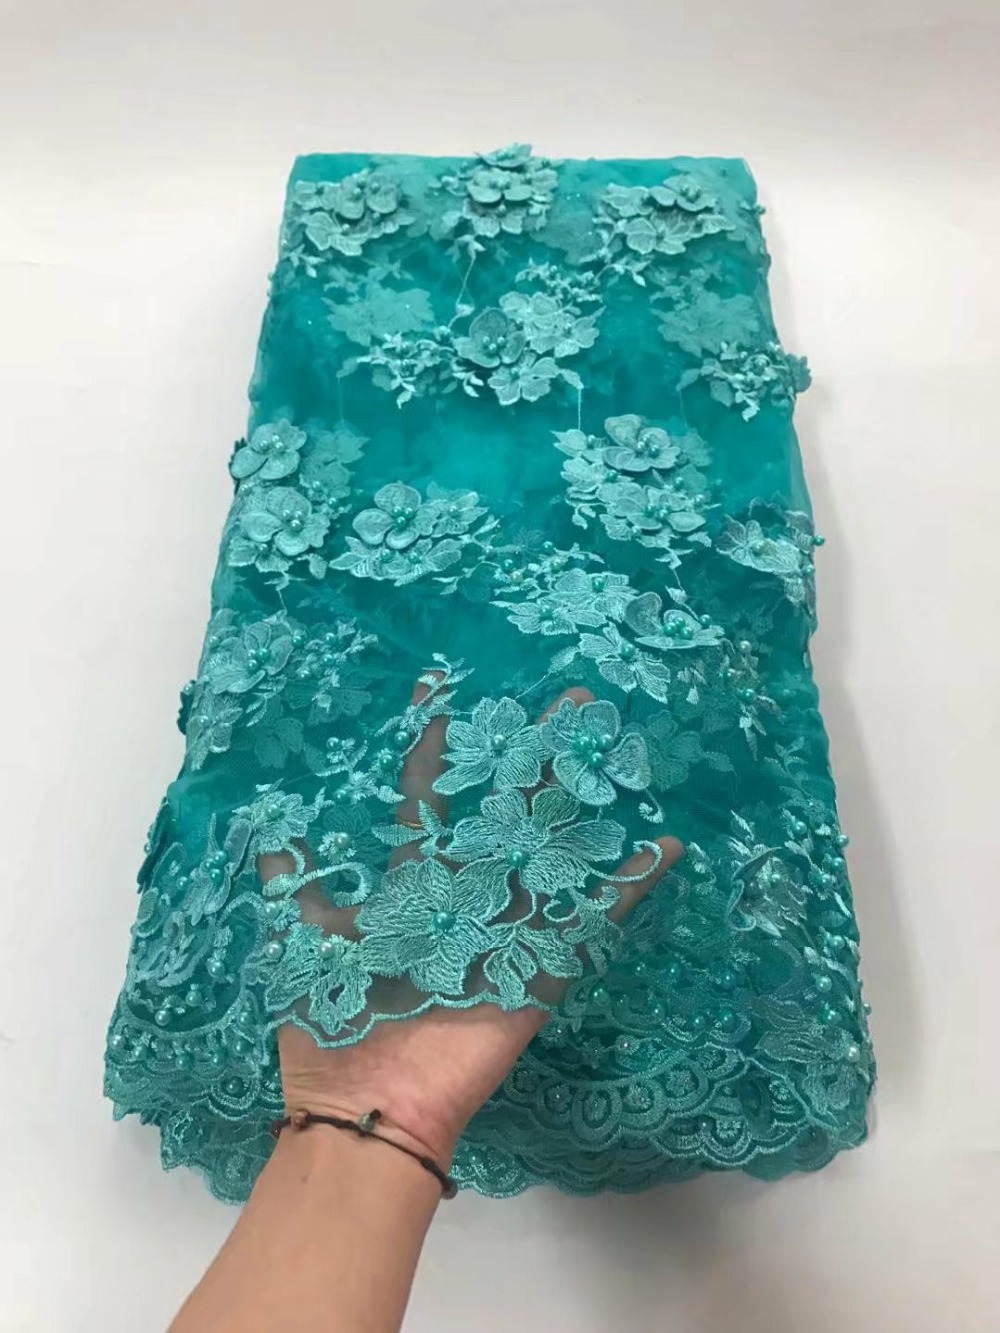 Spitze Stoff Us 119 1 5 Yards Lot Jy 718 1 Beliebte Design Bestickt Franzosisch Spitze Stoff Fur Party Kleid African Tull Stoff Tull Stoff In Lace From Home